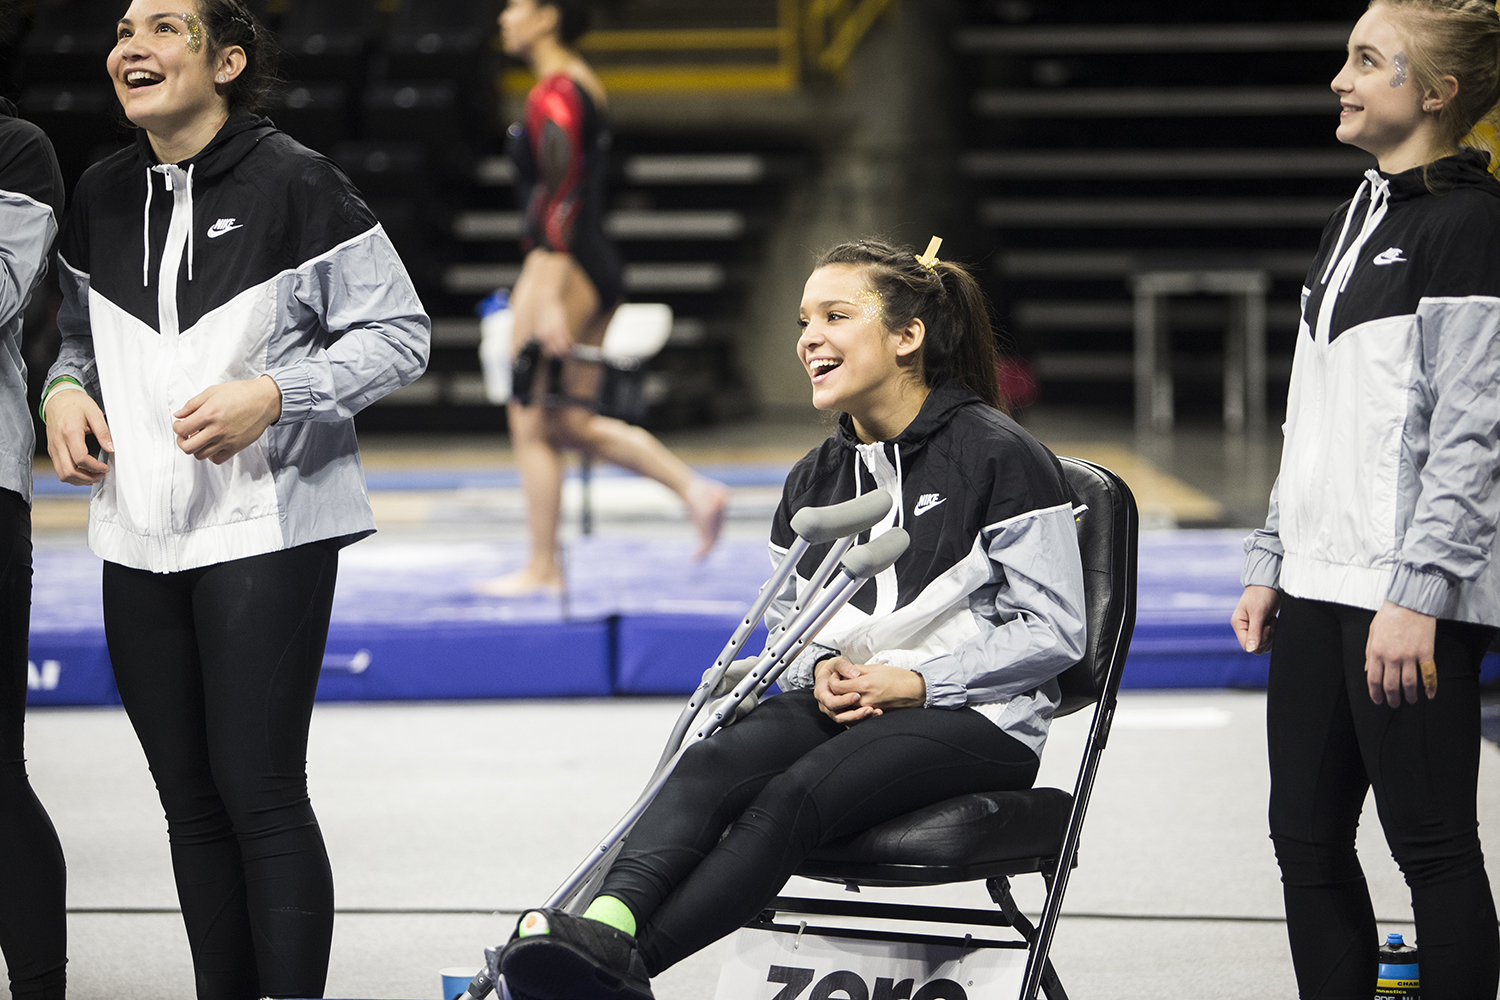 An+injured+Iowa+gymnast+cheers+on+her+teammates+at+a+meet+against+Rutgers+on+Saturday%2C+January+26%2C+2019.+The+Hawkeyes+defeated+the+Scarlet+Knights+194.575+to+191.675.+